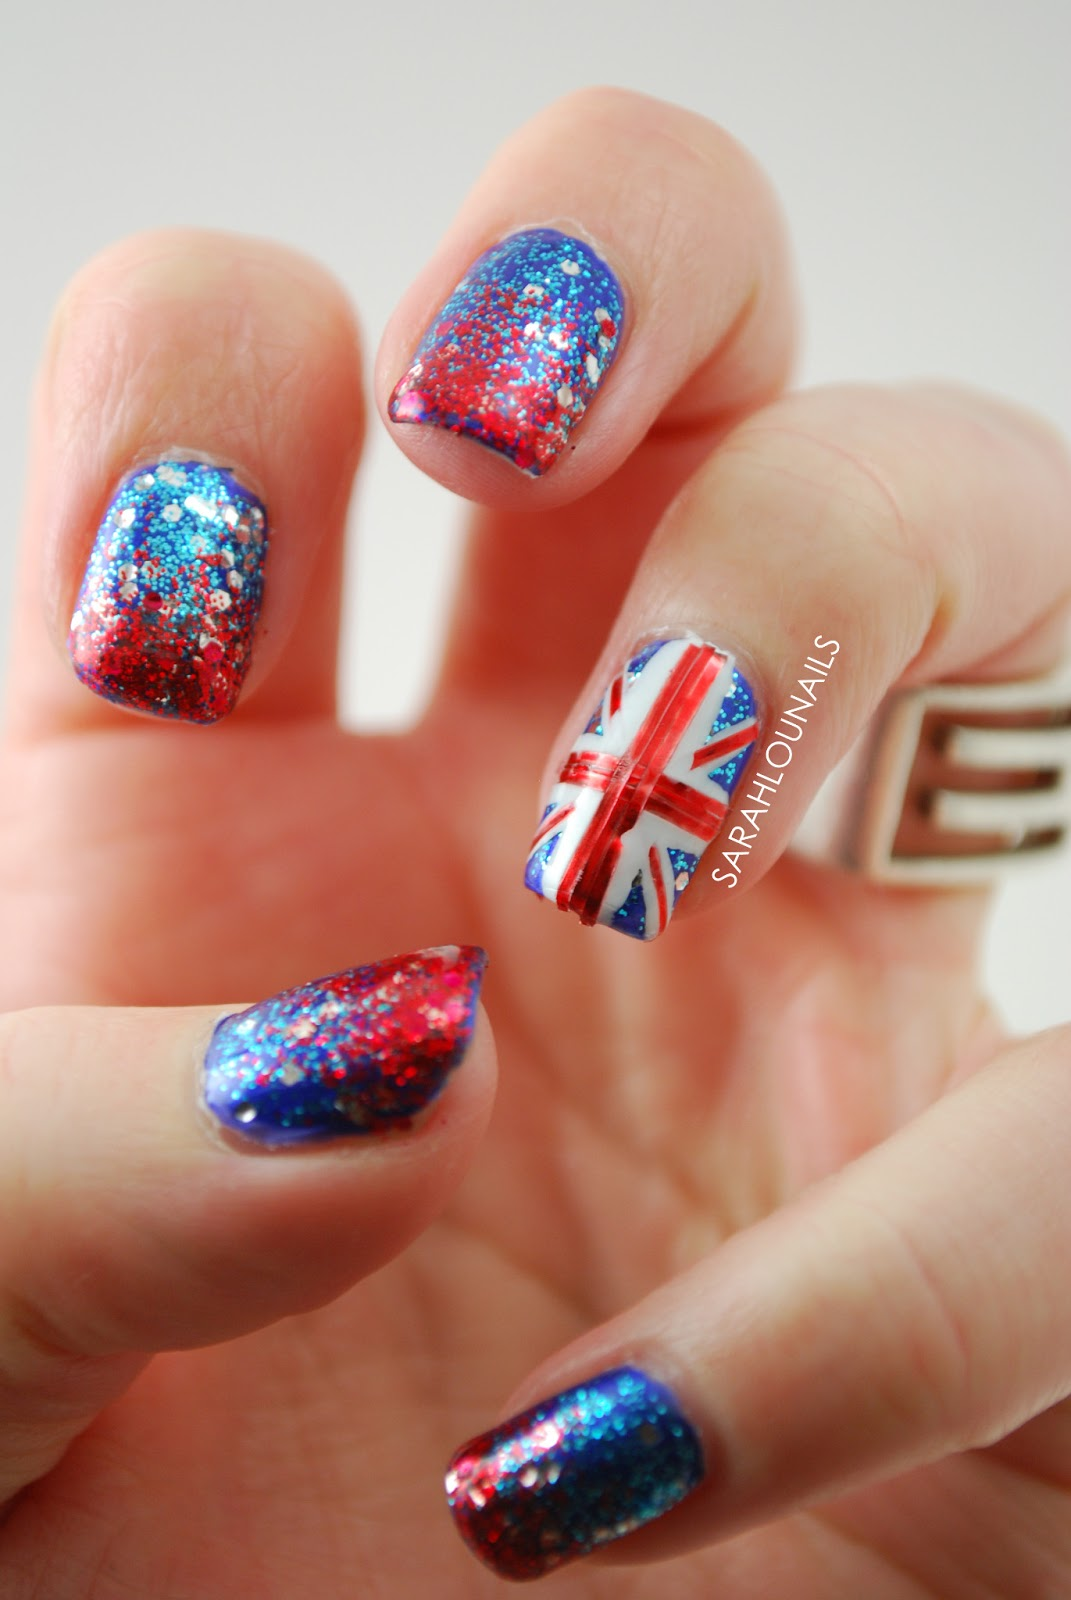 Sarah lou nails union jack nails union jack nails prinsesfo Image collections